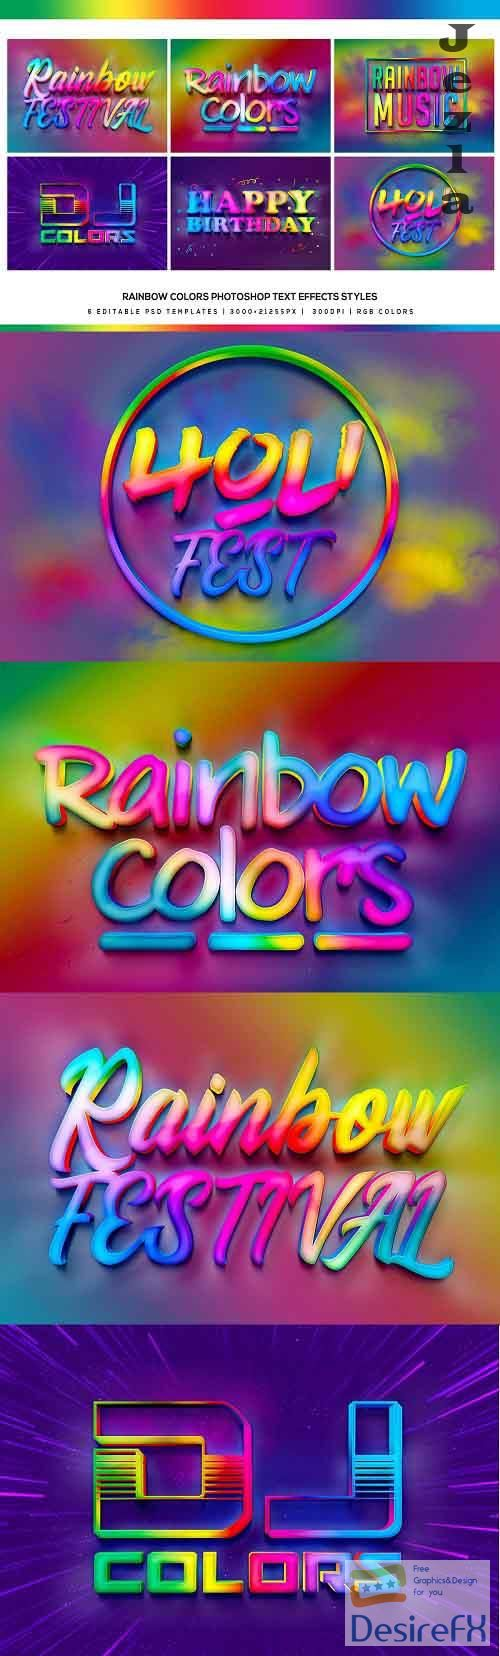 Rainbow Colors Photoshop Text Effect - 5033957